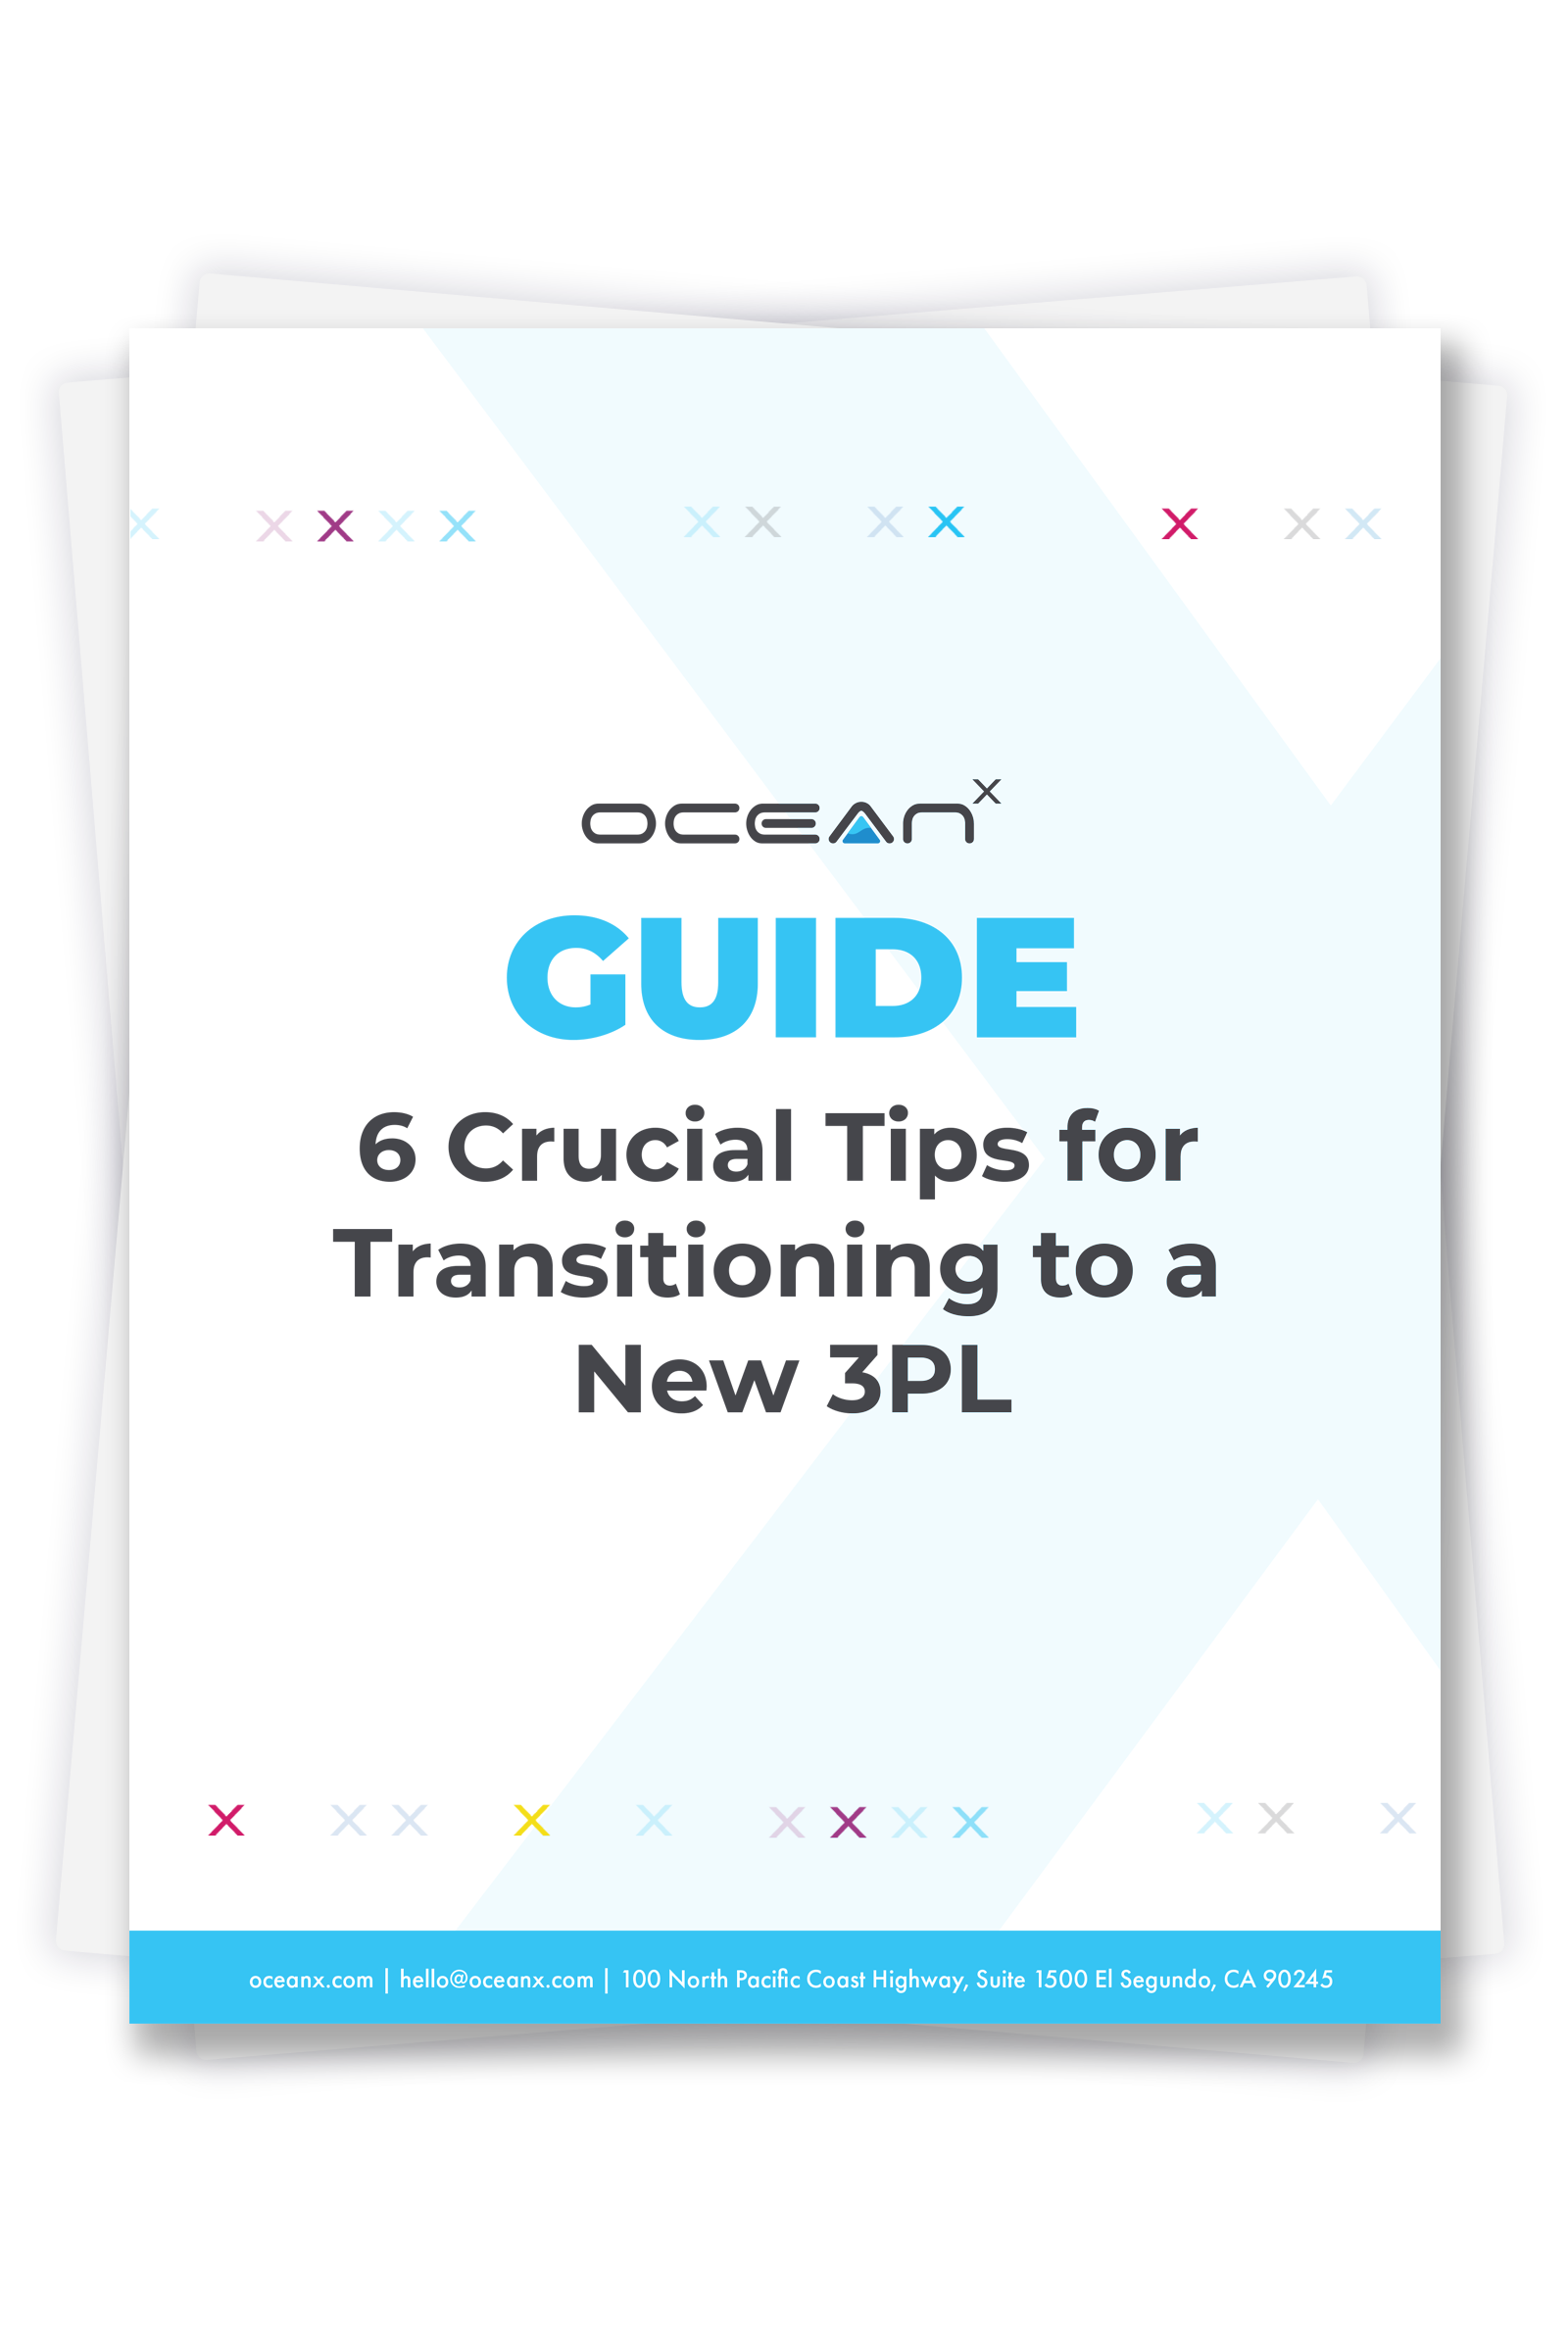 Guide Cover Image: 6 Crucial Tips for Transitioning to a New 3PL